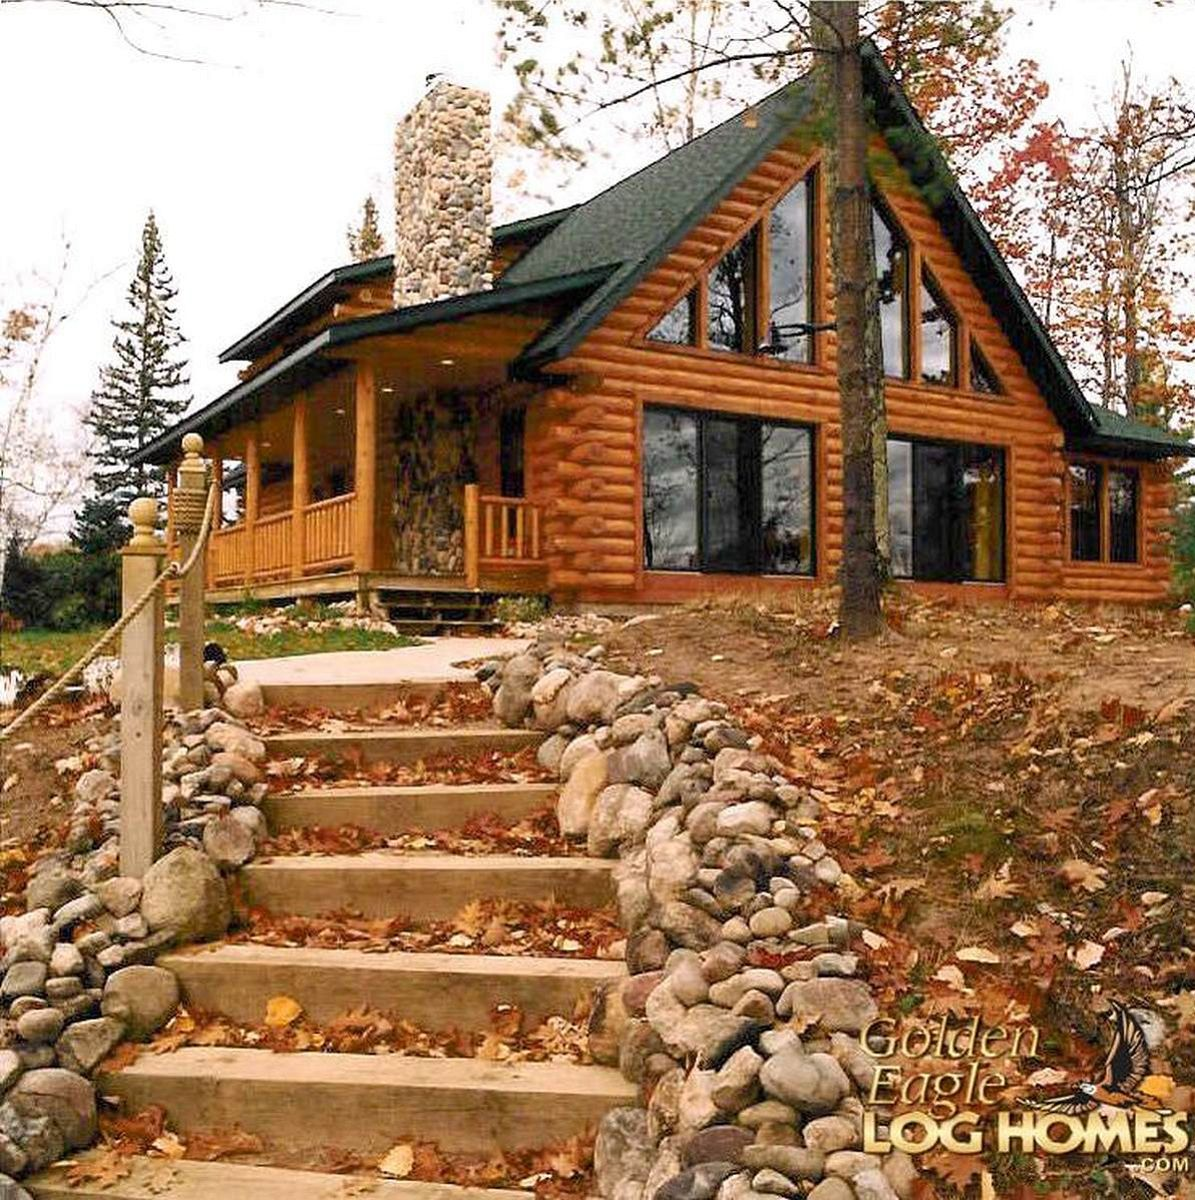 Log home by golden eagle log homes golden eagle log logs for Building a chalet home